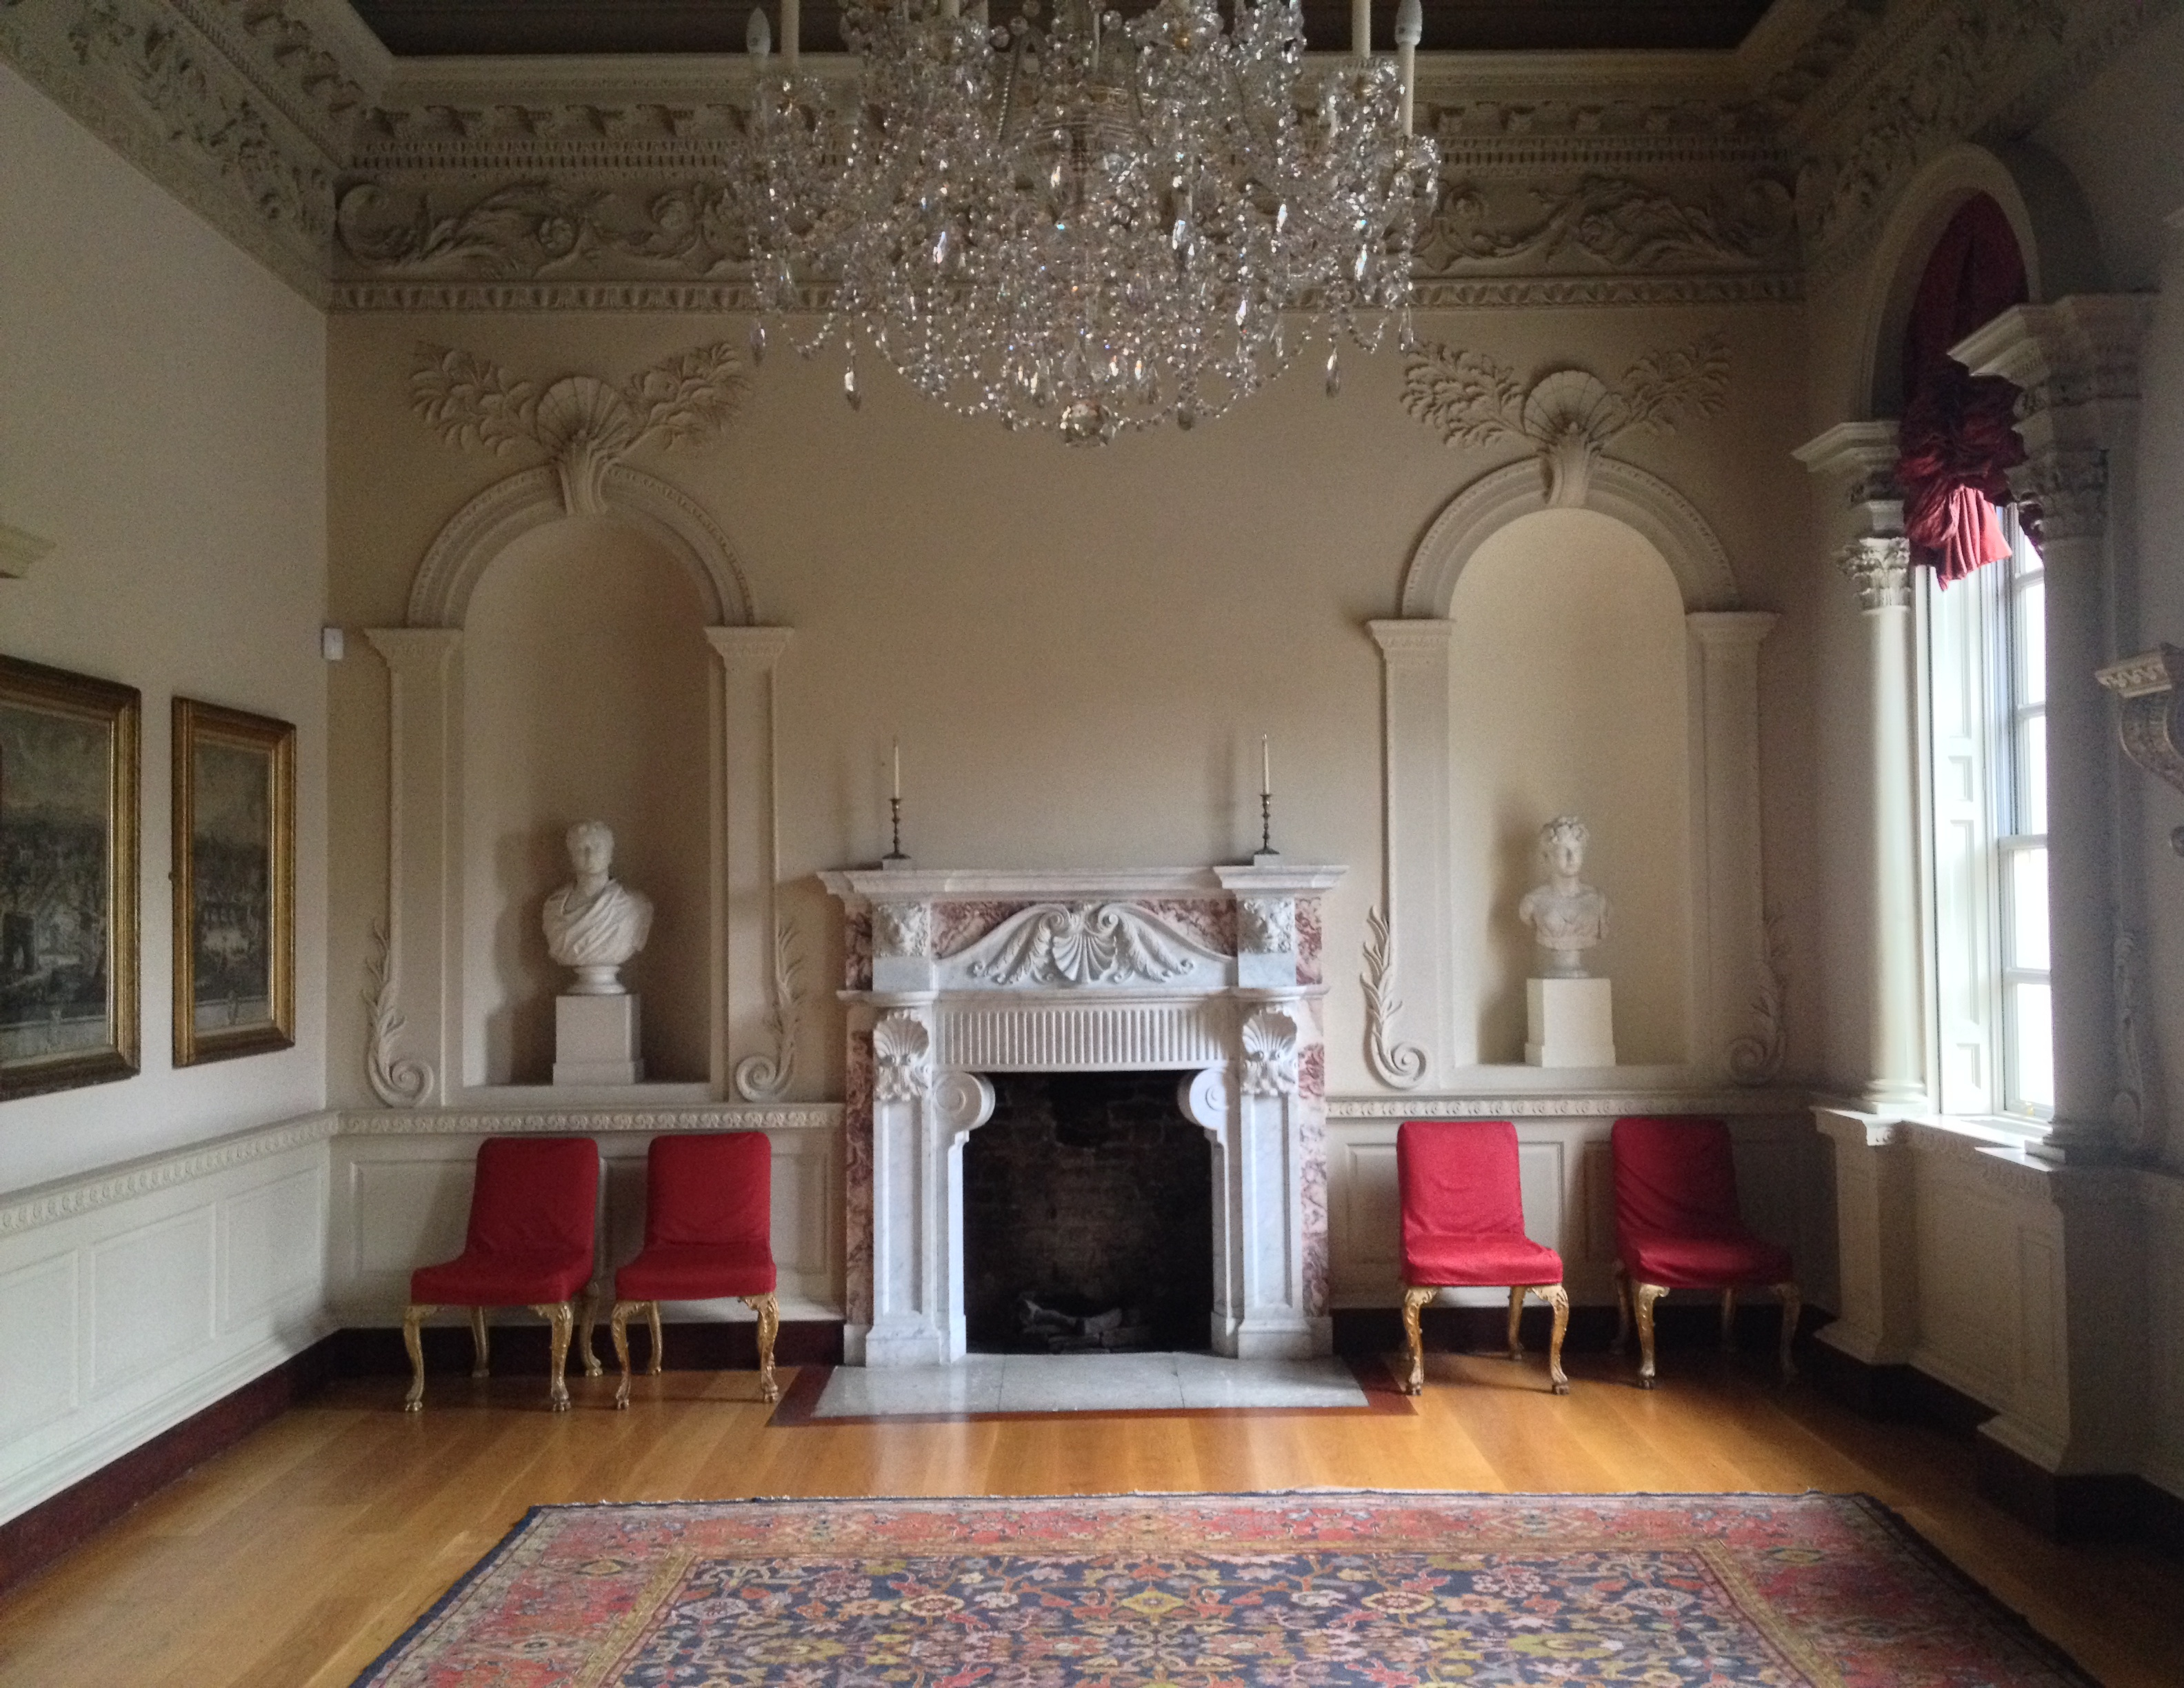 The Most Beautiful Room in Ireland? « The Irish Aesthete on Beautiful Room Pics  id=39934